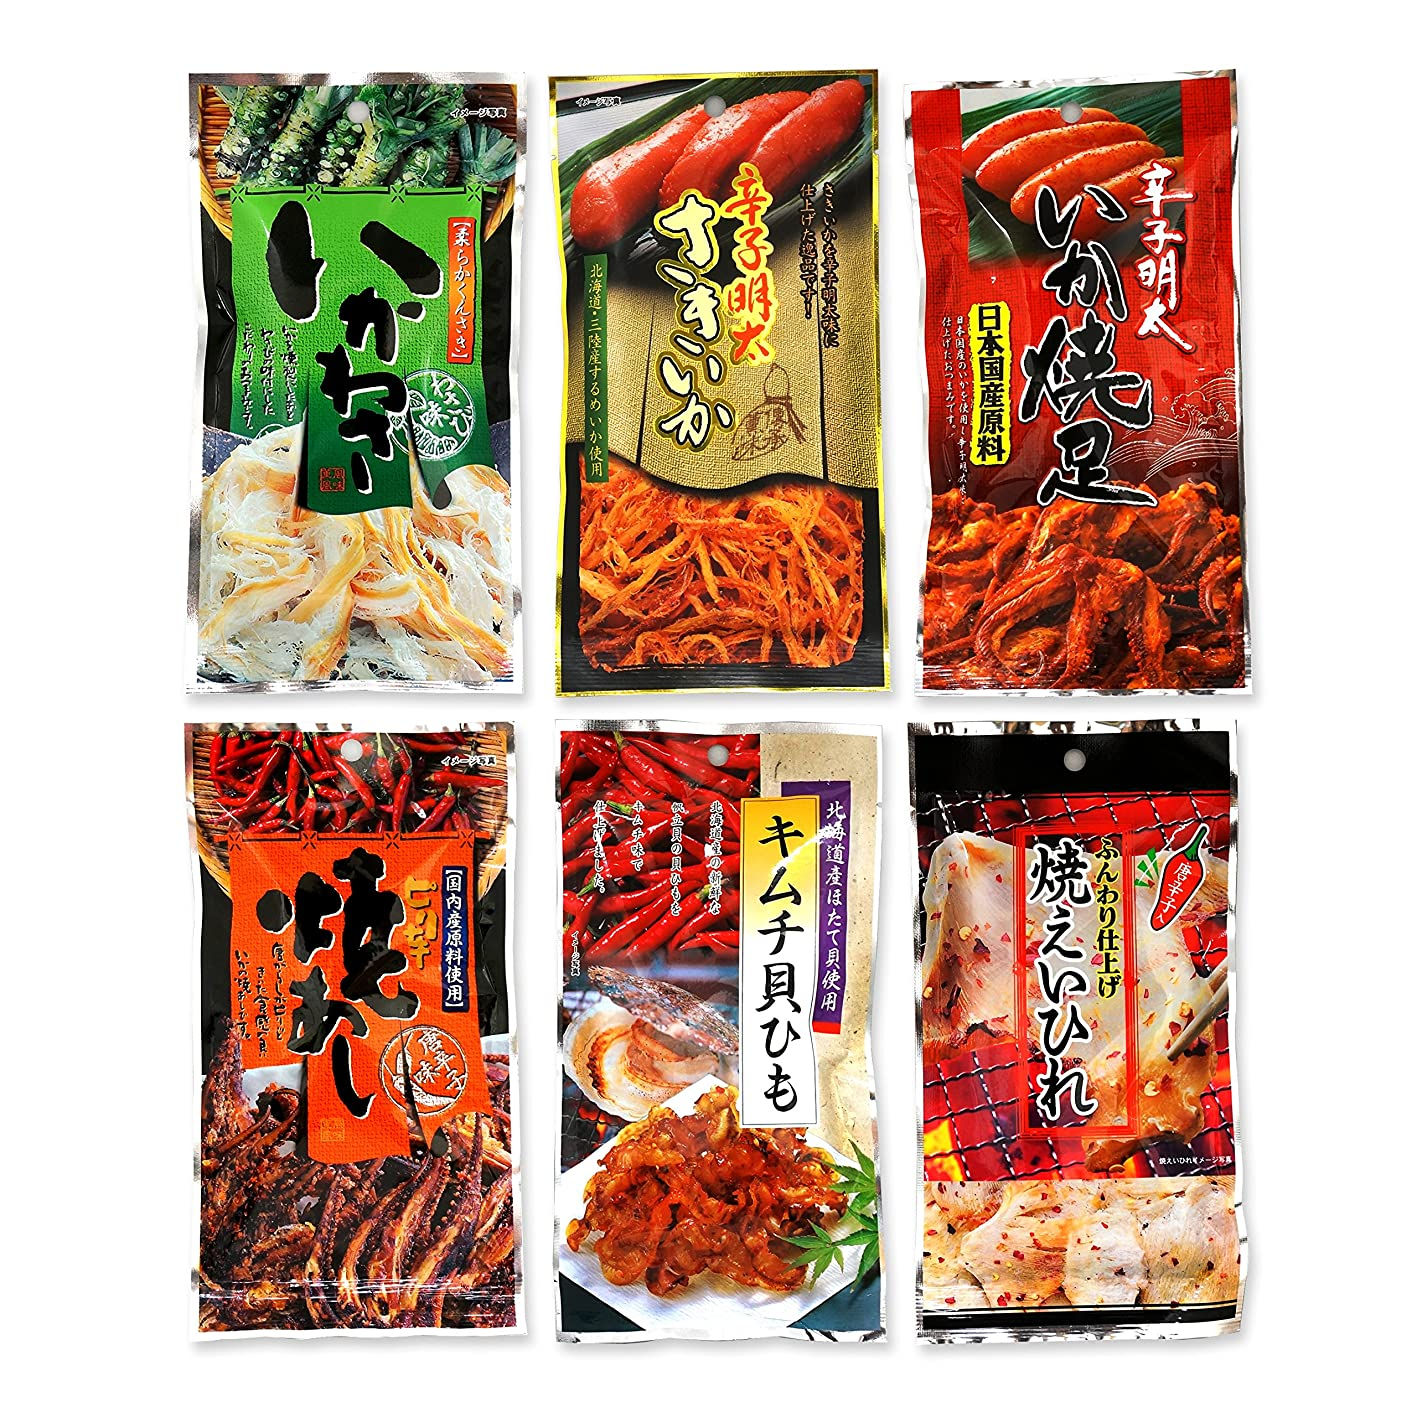 Assorted 6 Packs of Otsumami (Japanese Dried Seafood Snack eaten with Sake) Set F (Spicy Squid, etc.) Ninjapo Wrapping zyqicumsomv277